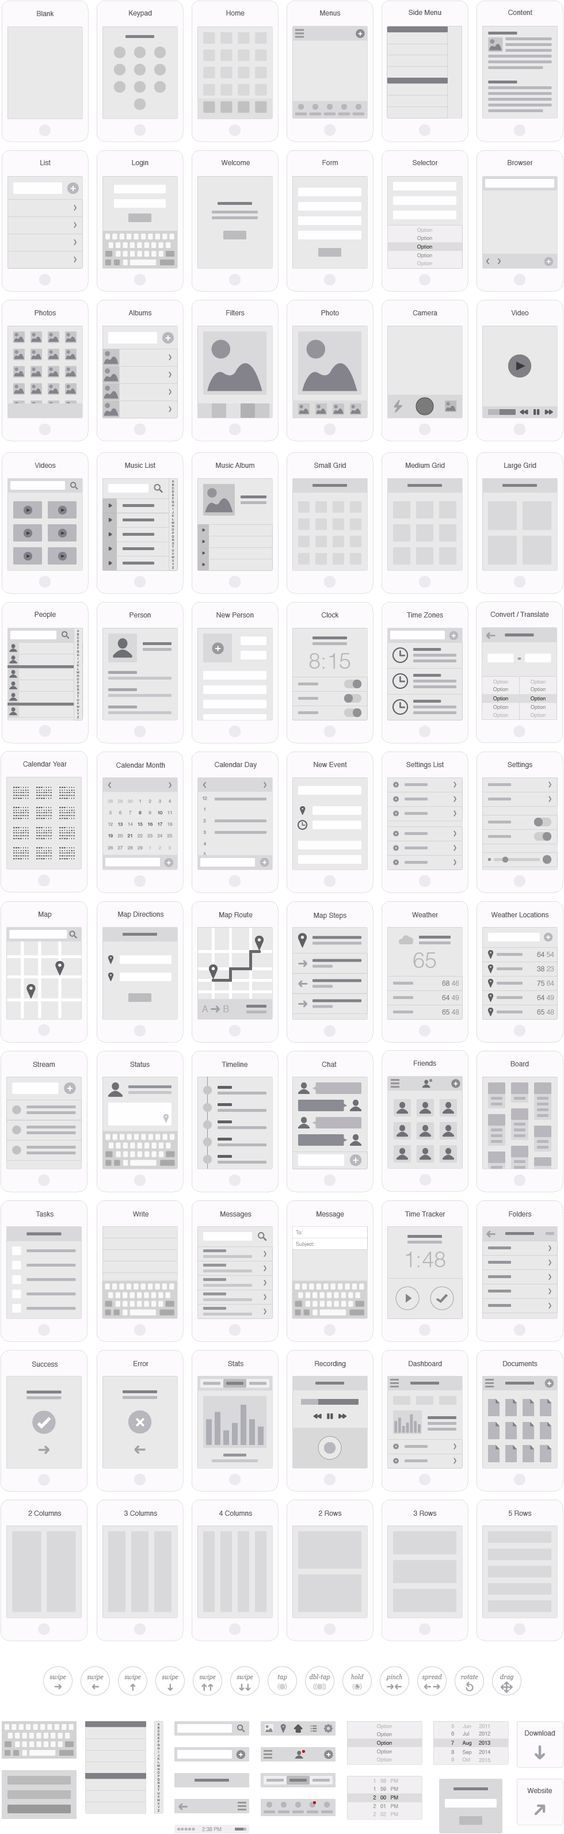 Mobile App Visual Flowchart Illustrator Template – UX Kits #ux #webdesign: